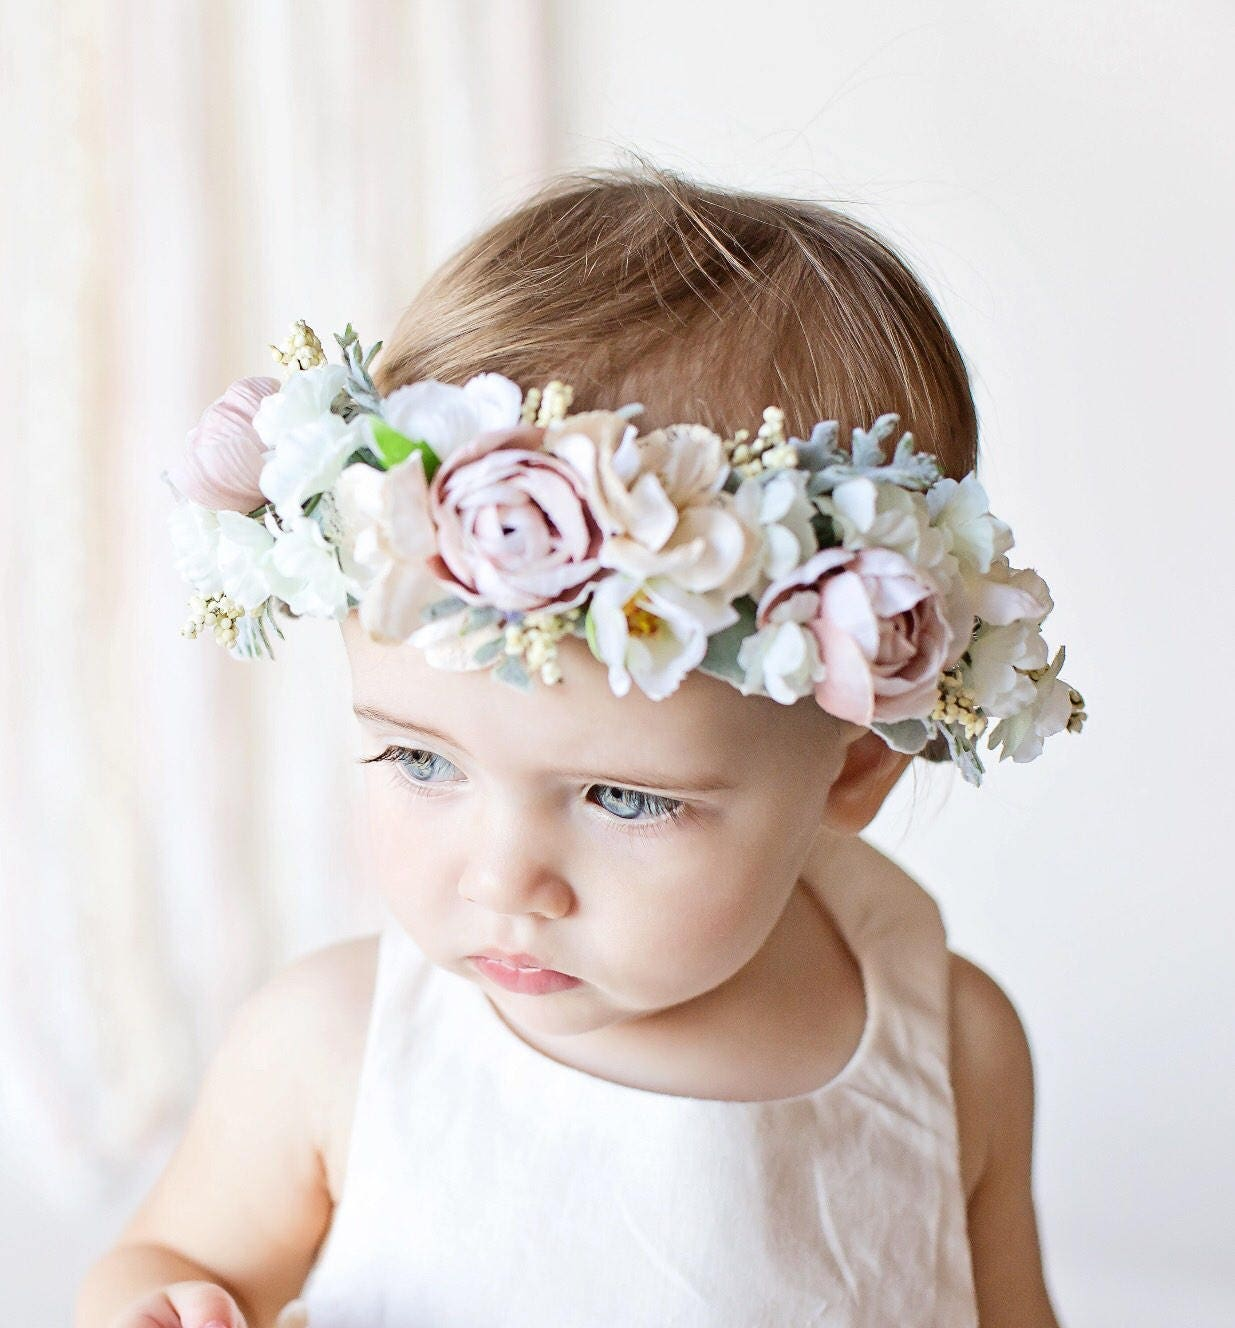 Tieback Halo Flower Crown Headband Newborn Photo Prop Tieback